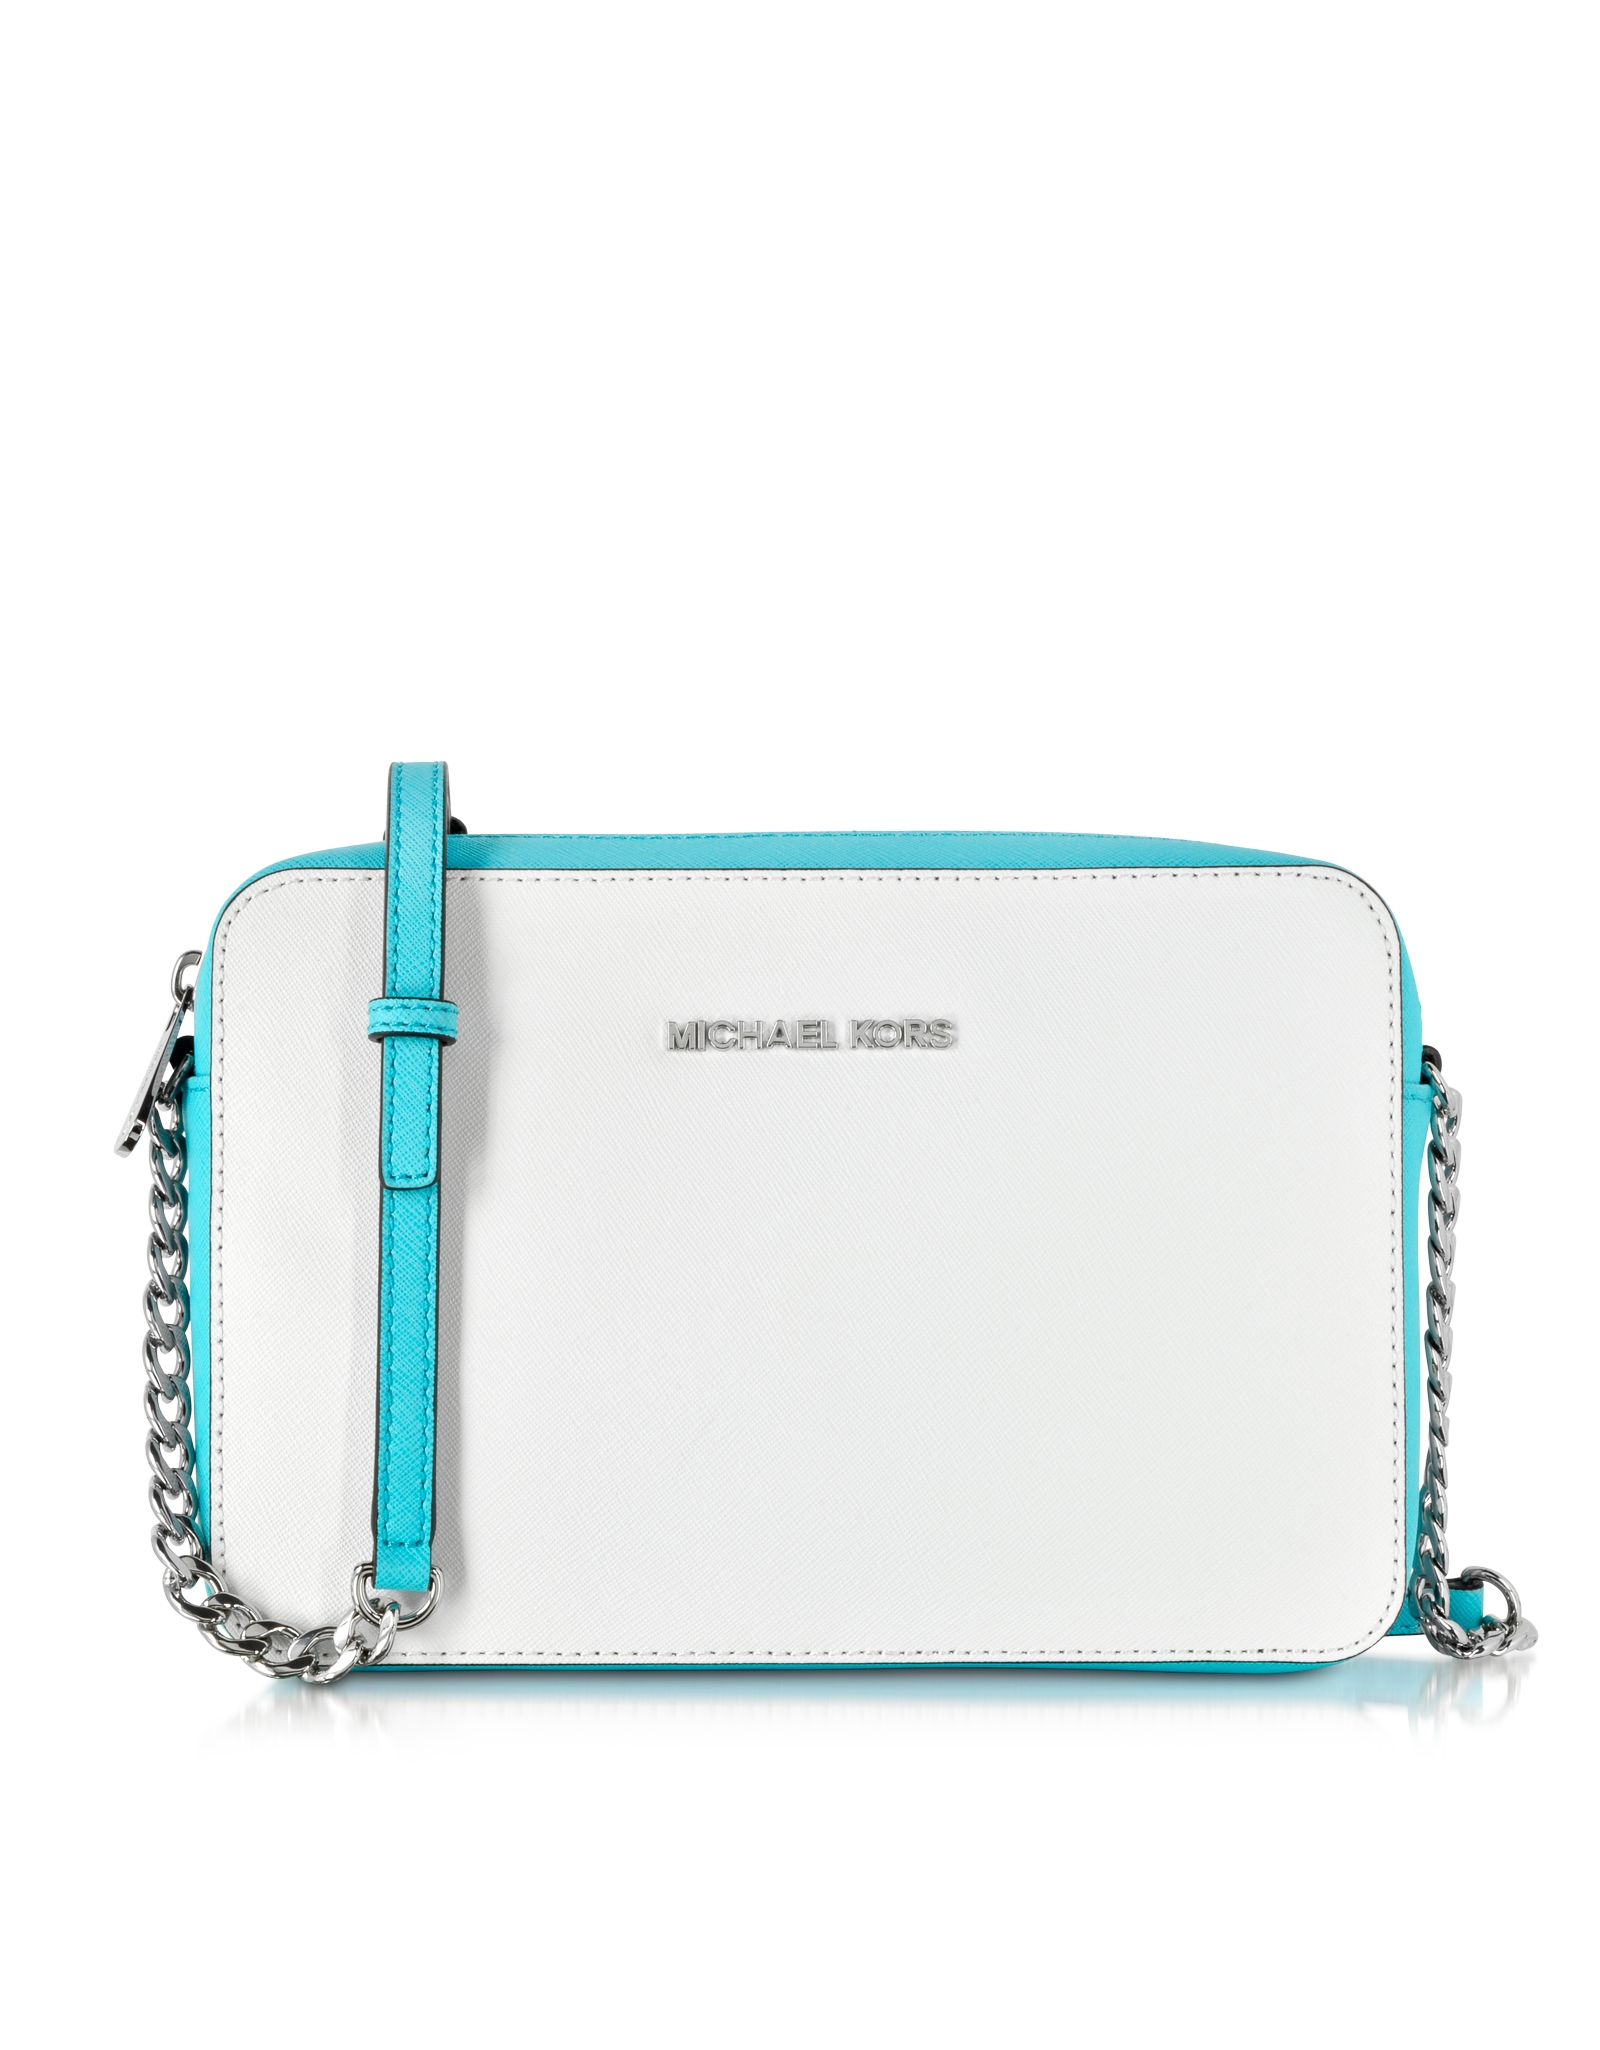 7e9fdf6f47 Lyst - Michael Kors White aqua Jet Set Travel Large Saffiano Leather ...